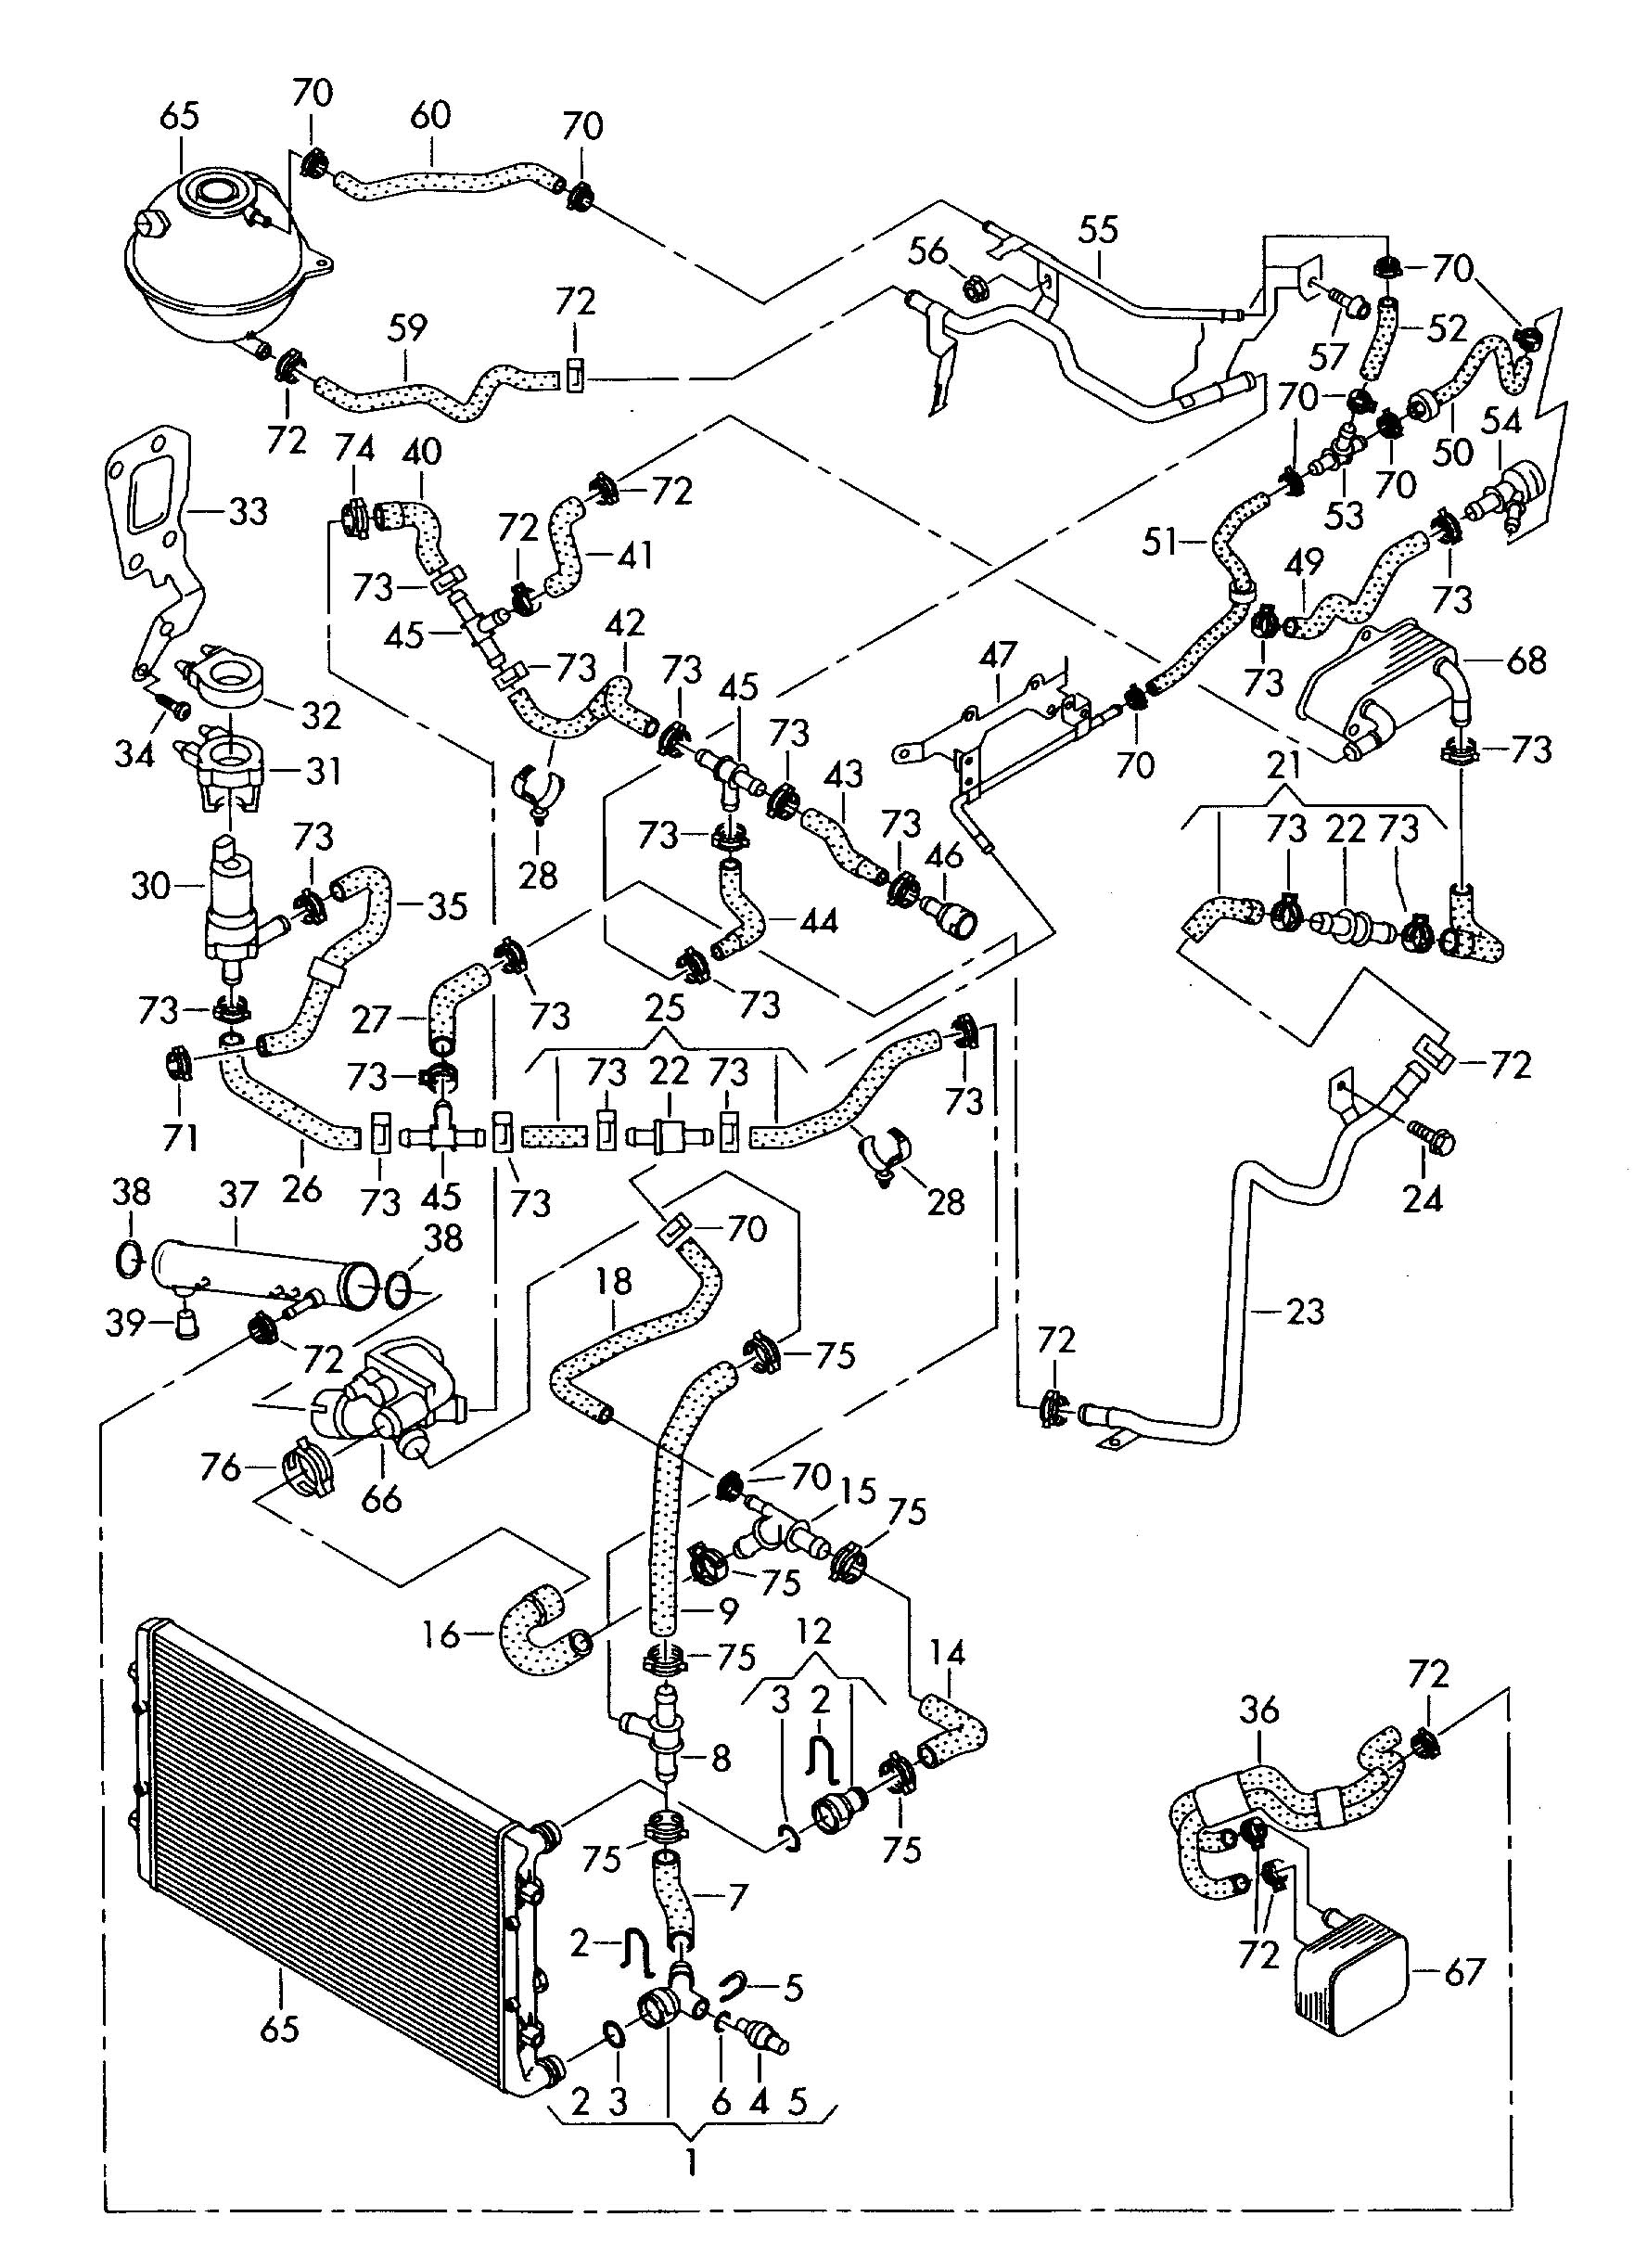 vw eos parts diagram dodge ram 1500 fuse box 2008 wiring source showassembly on